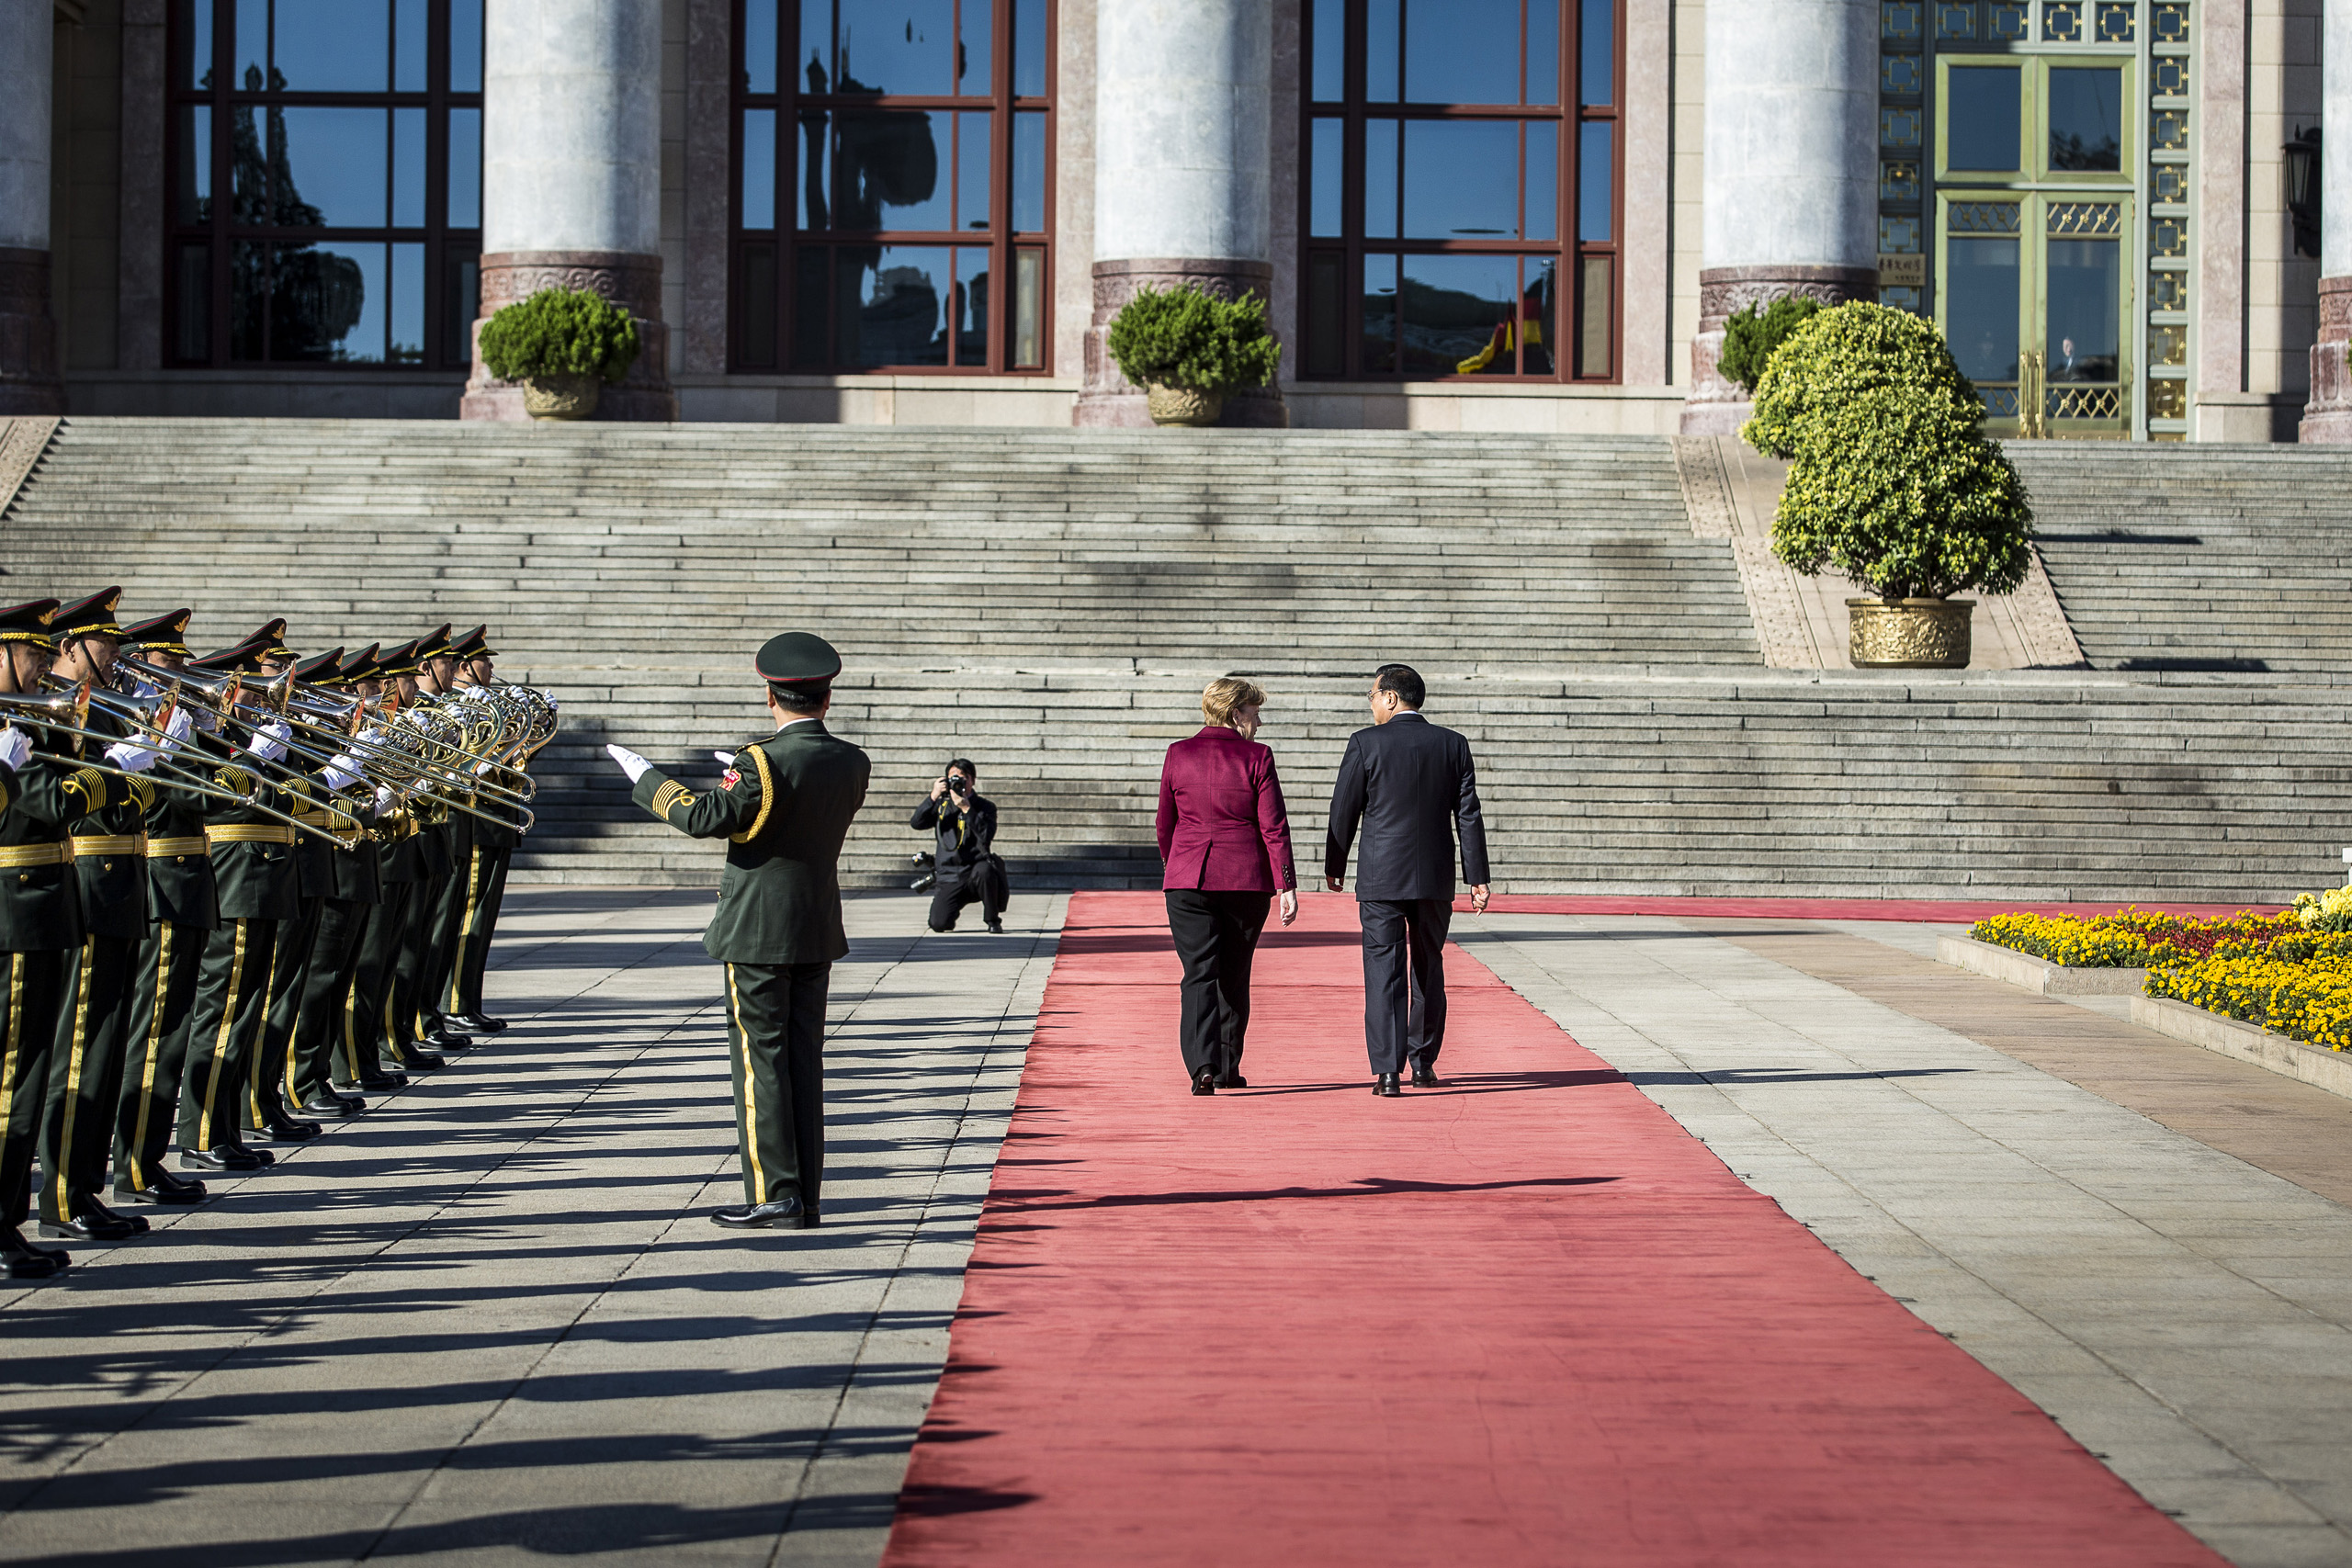 Chinese Premiere Li Keqiang receives Chancellor Angela Merkel with Military Honors in front of Great Hall of the People in Bejing, China. Oct. 29, 2015.